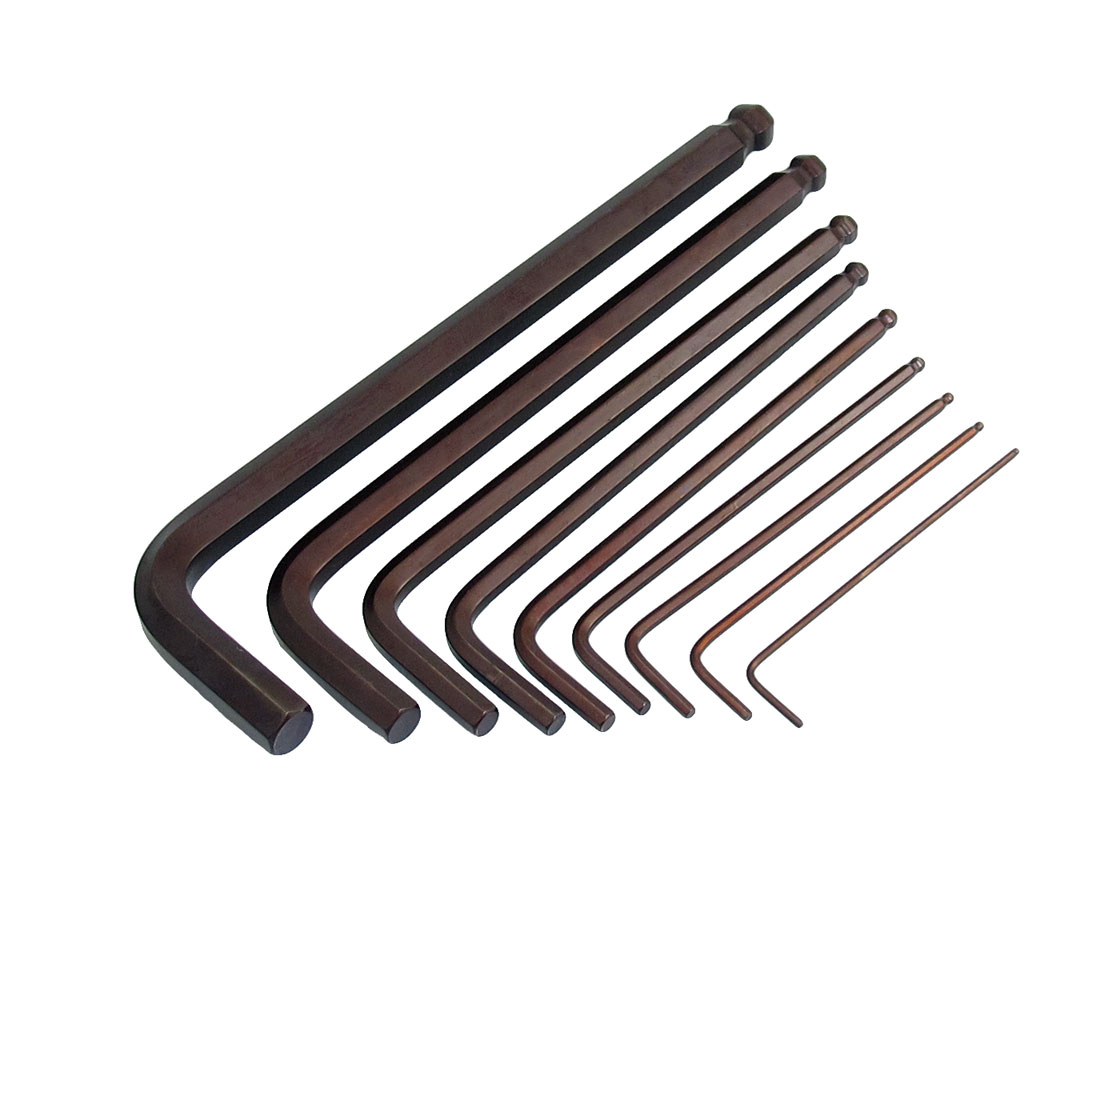 Chrome Vanadium Coffee Color 1.5mm to 10mm Hexagon Hex Key Wrench Hand Tool 9 in 1